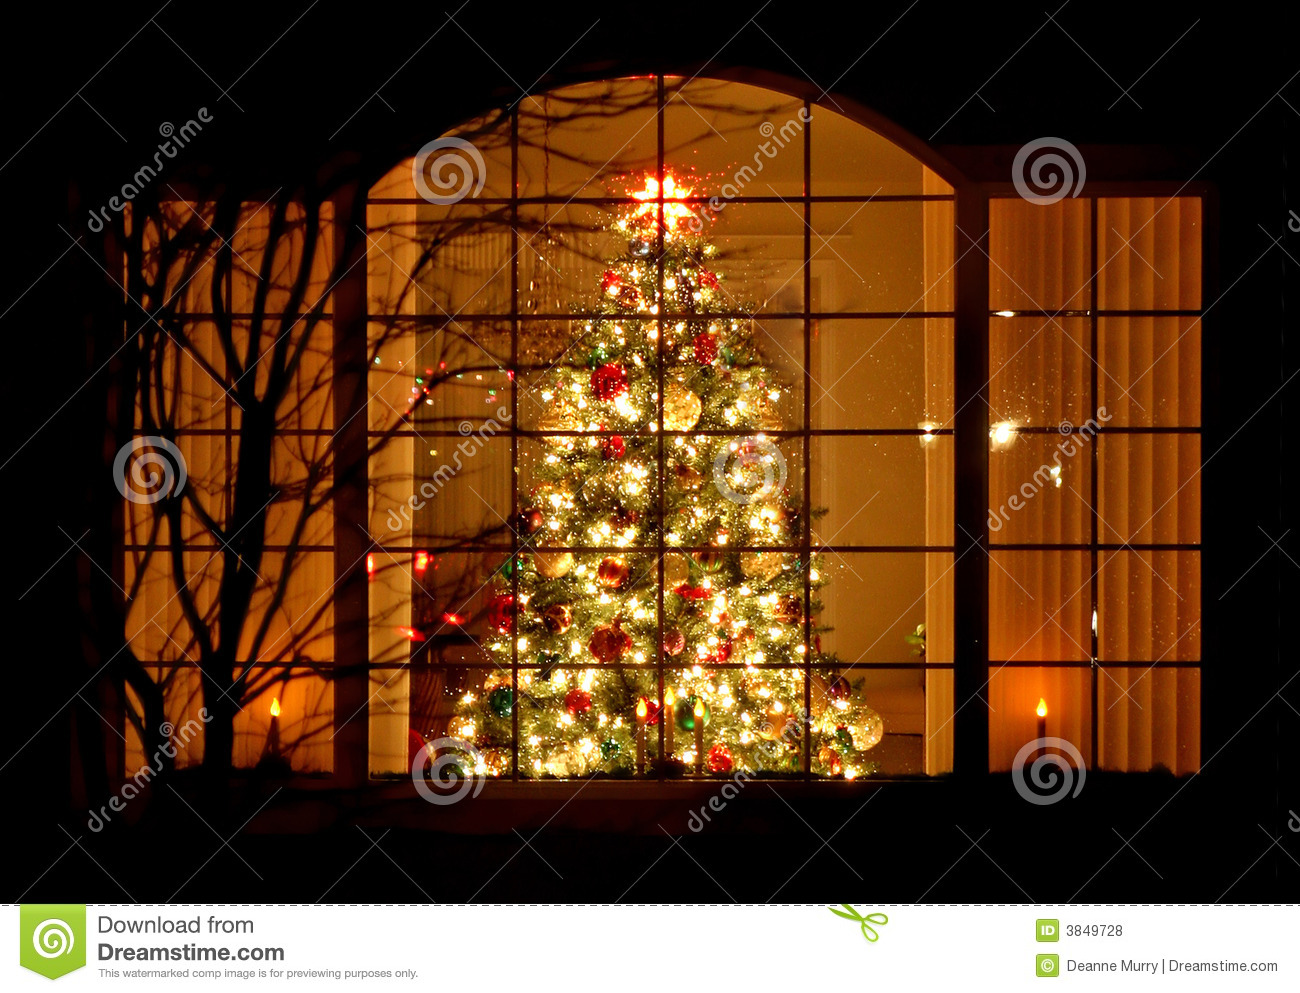 Welcome Home Christmas Tree In Window Royalty Free Stock Photos ...